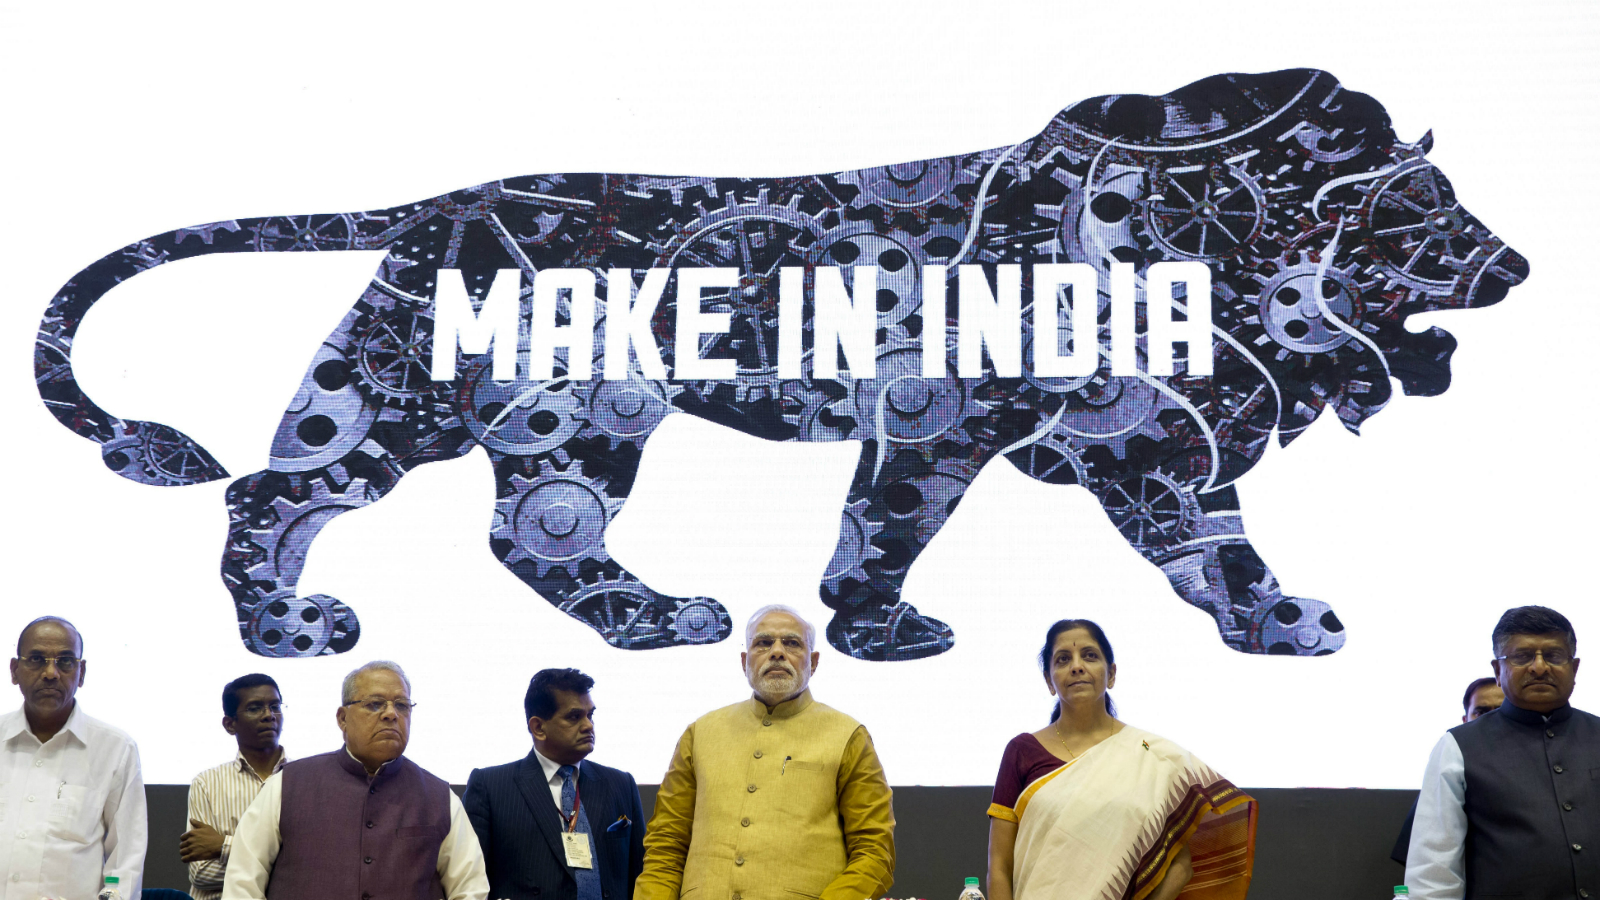 Indian Prime Minister Narendra Modi, center, unveils the logo of 'Make in India' initiative in New Delhi, India, Thursday, Sept. 25, 2014. Scores of business leaders from India and abroad attended the launch of the initiative where in the Indian Prime Minister called on manufacturers across the globe to come and make India a manufacturing hub.